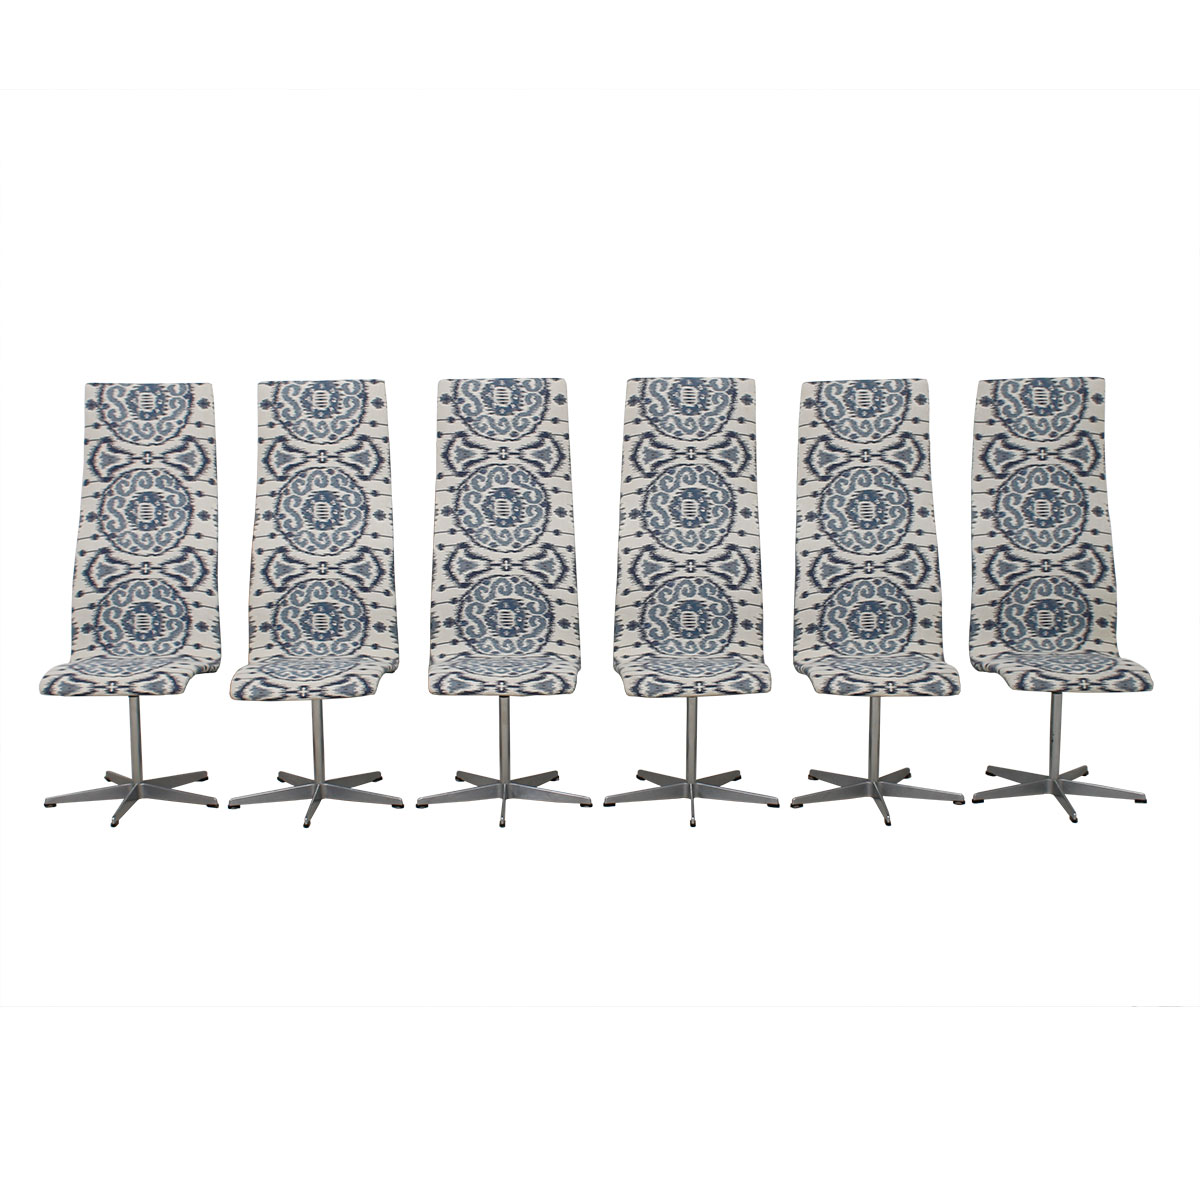 1970's Vintage Set of 6 Fritz Hansen Oxford Chairs w/ New Blue & White Ikat Upholstery